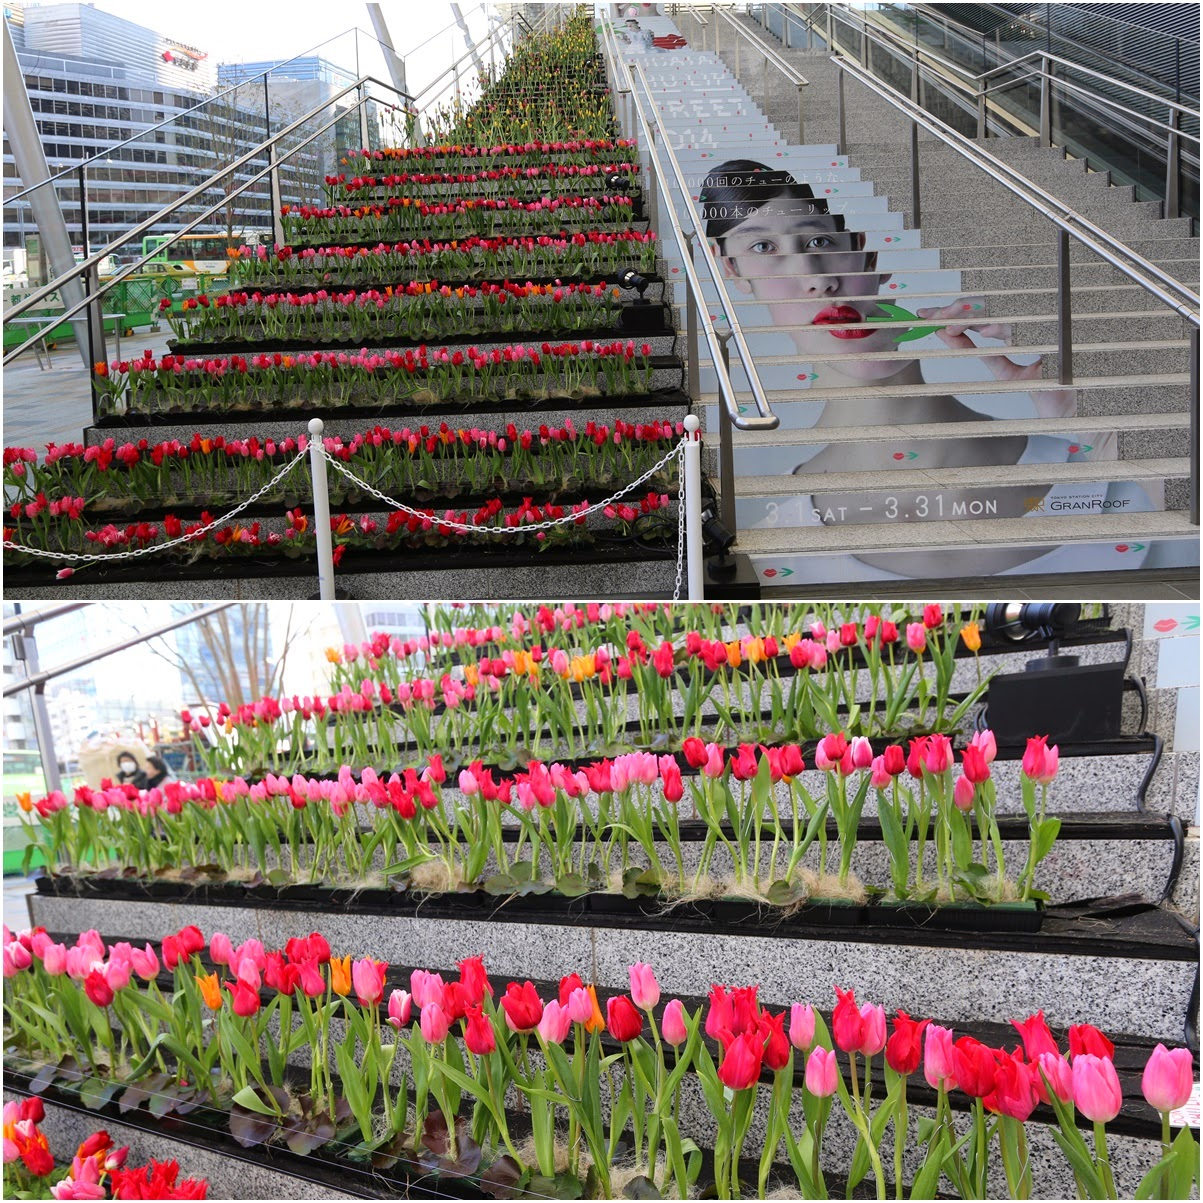 My favourite Tulips exhibition outside of Tokyo Station in Japan